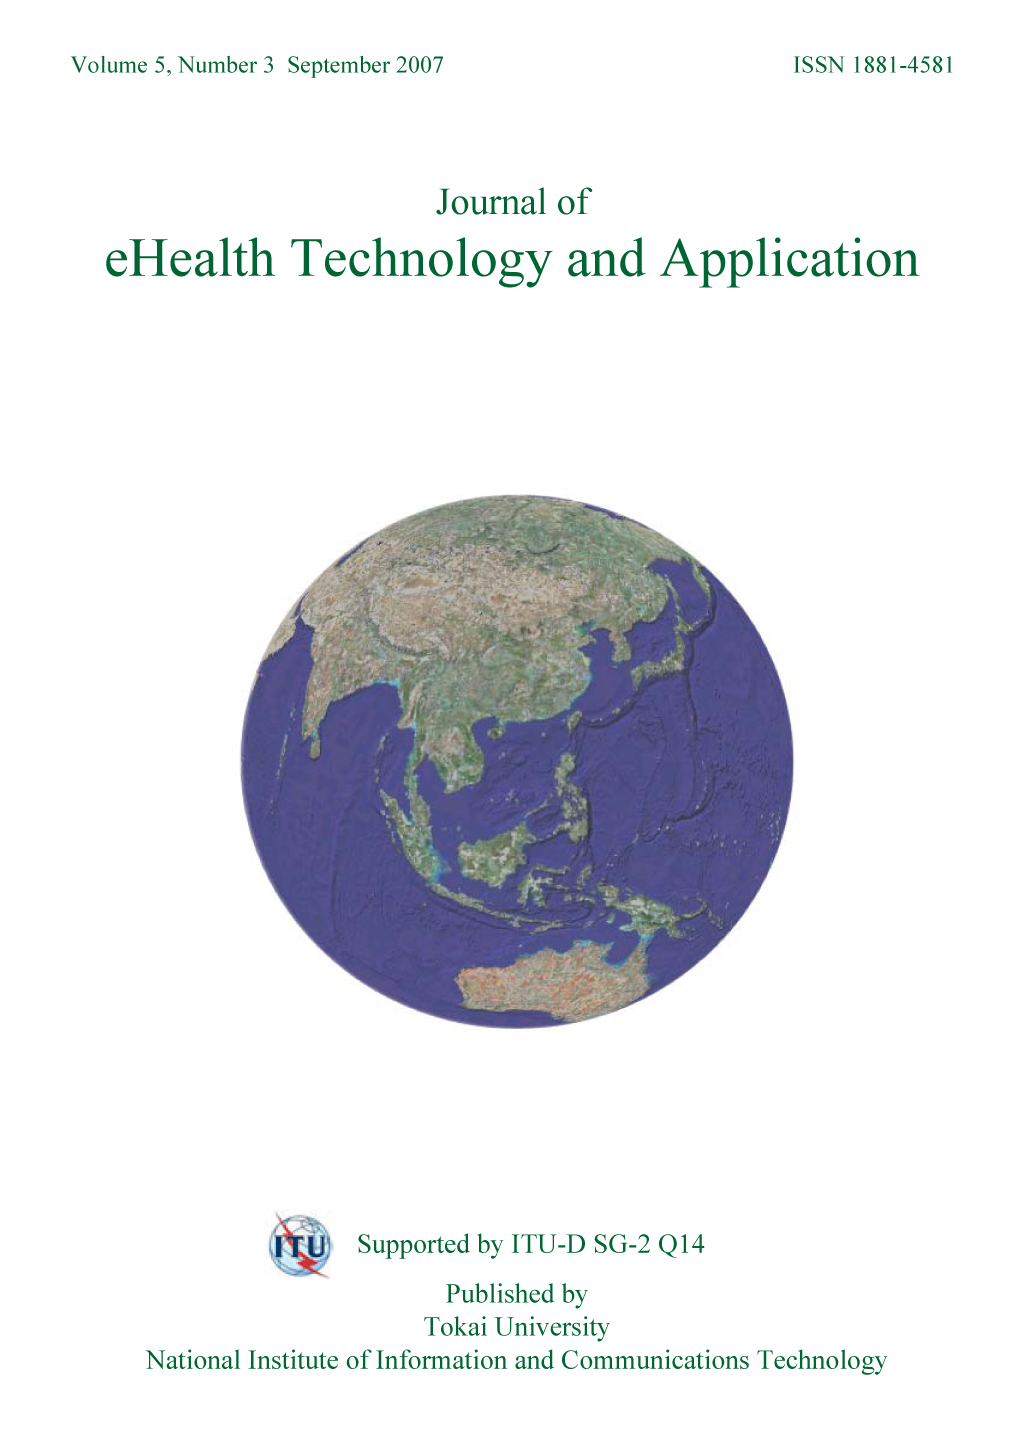 Journal of eHealth Technology and Application 2007